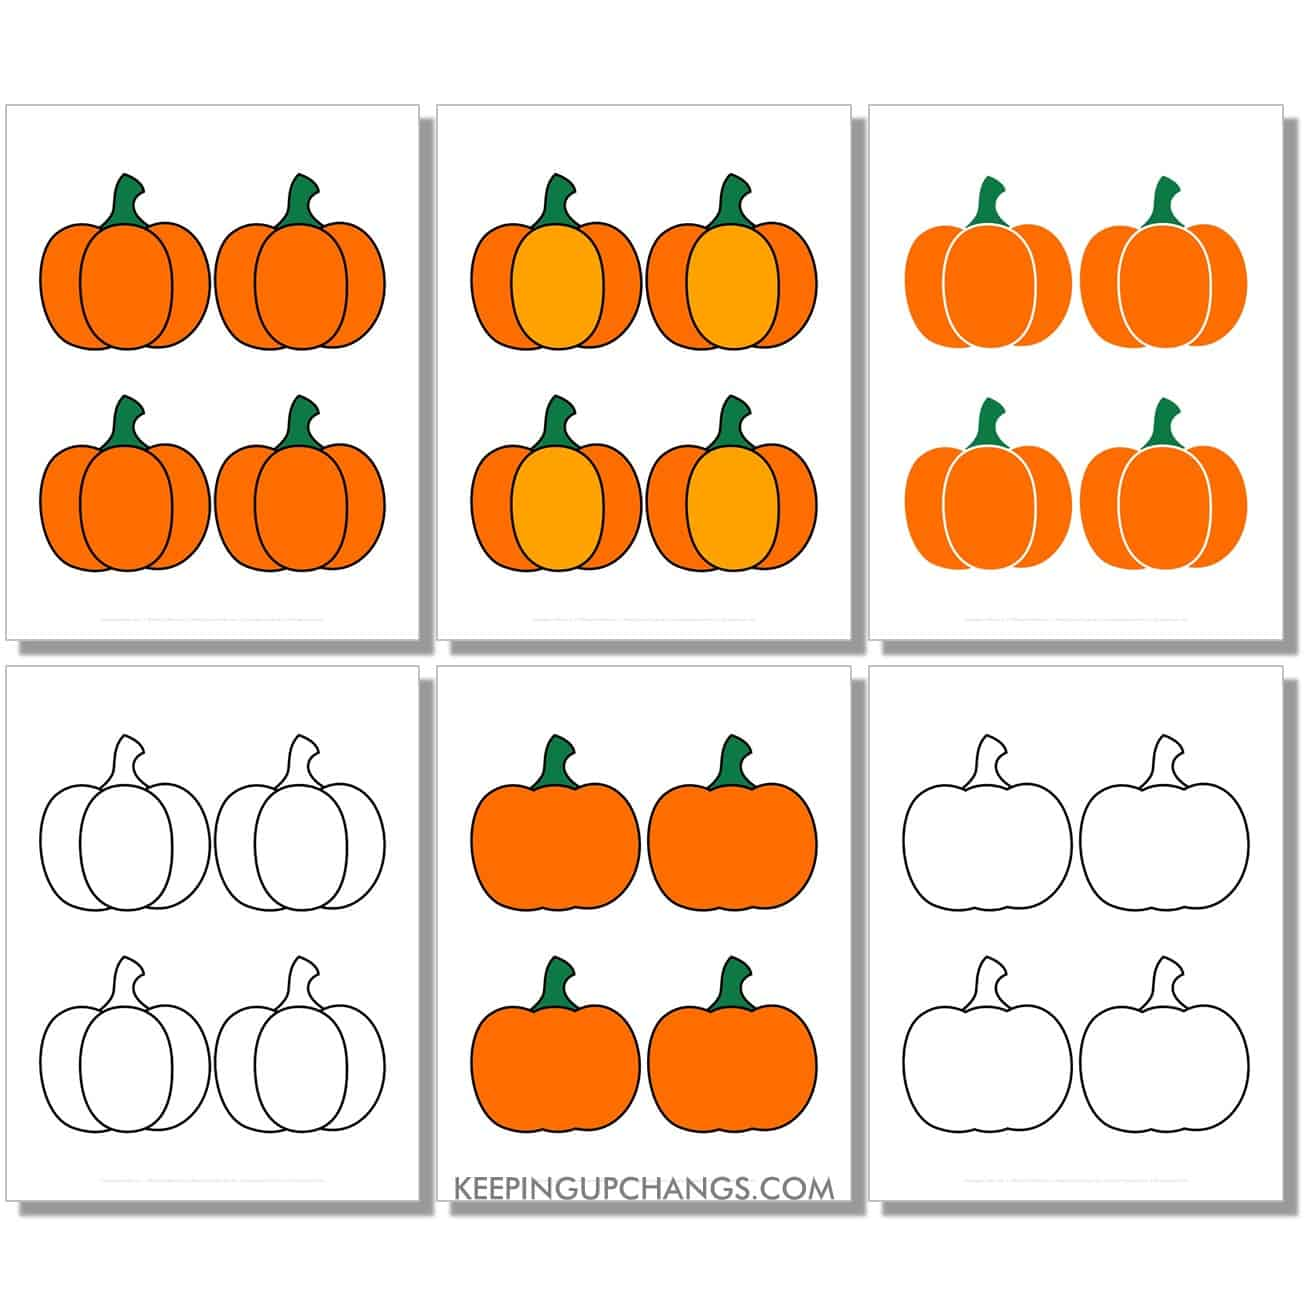 free small simple pumpkin in color, black and white, silhouette, 4 to a page.